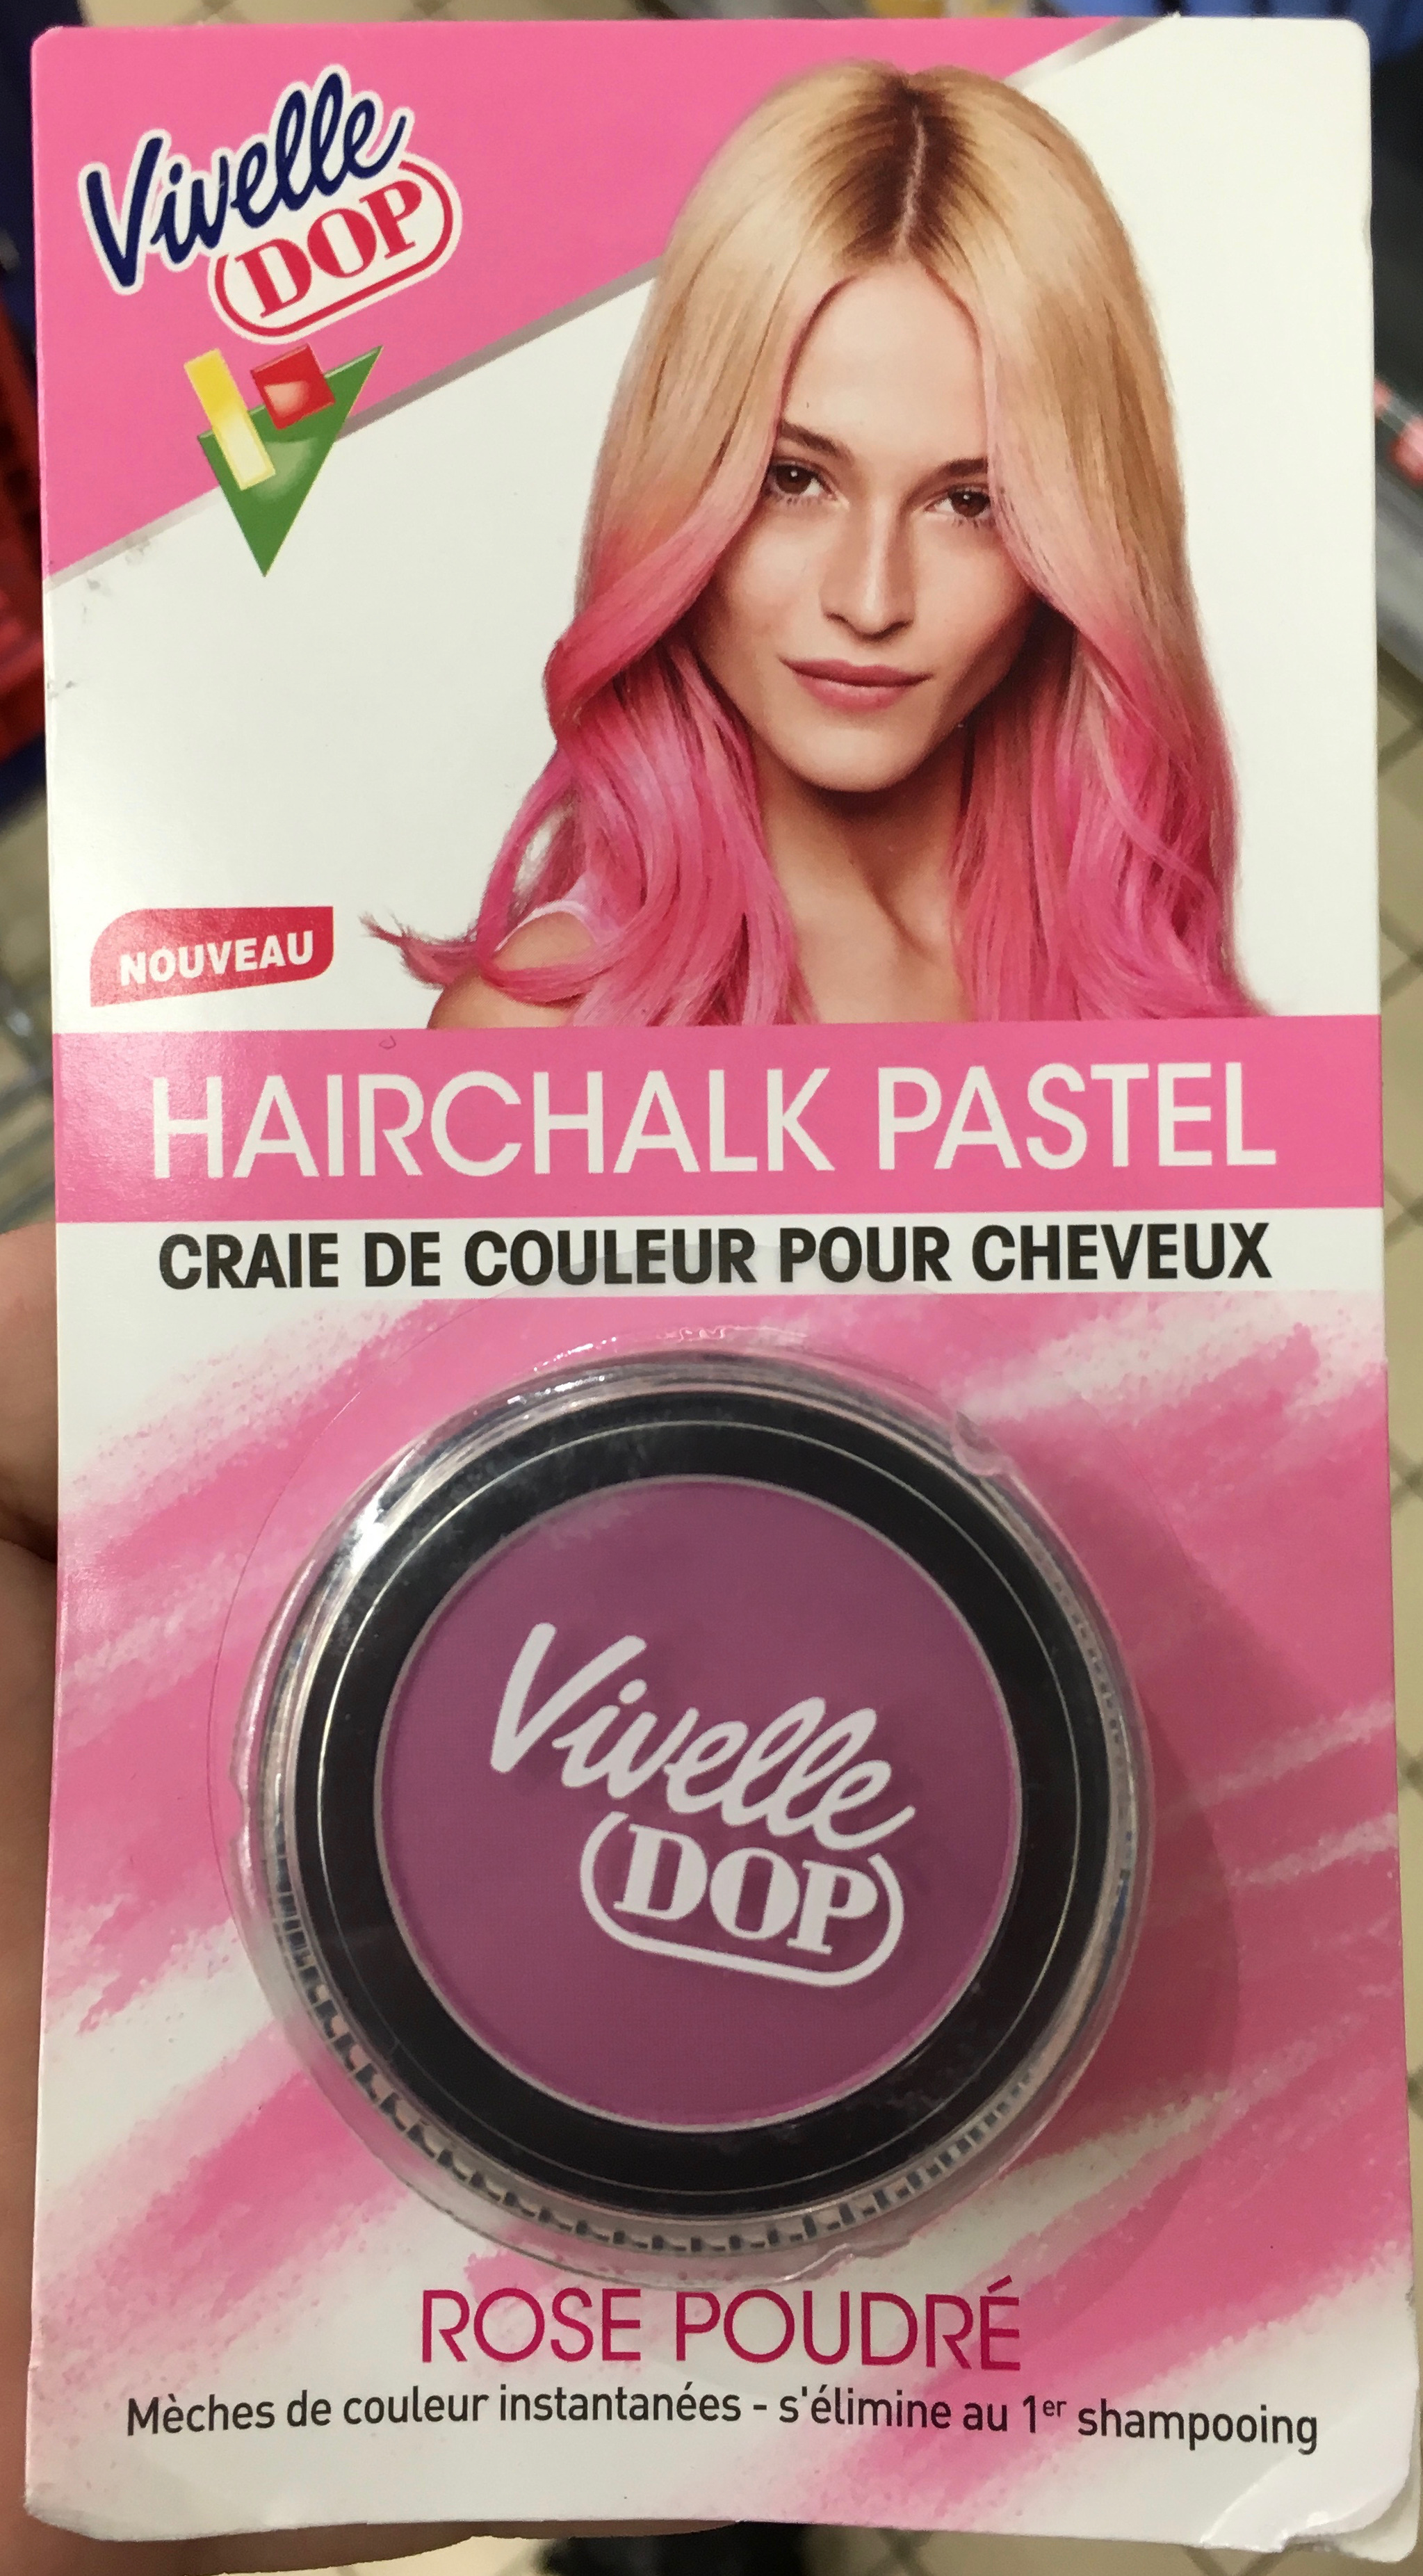 Hairchalk Pastel Rose poudré - Product